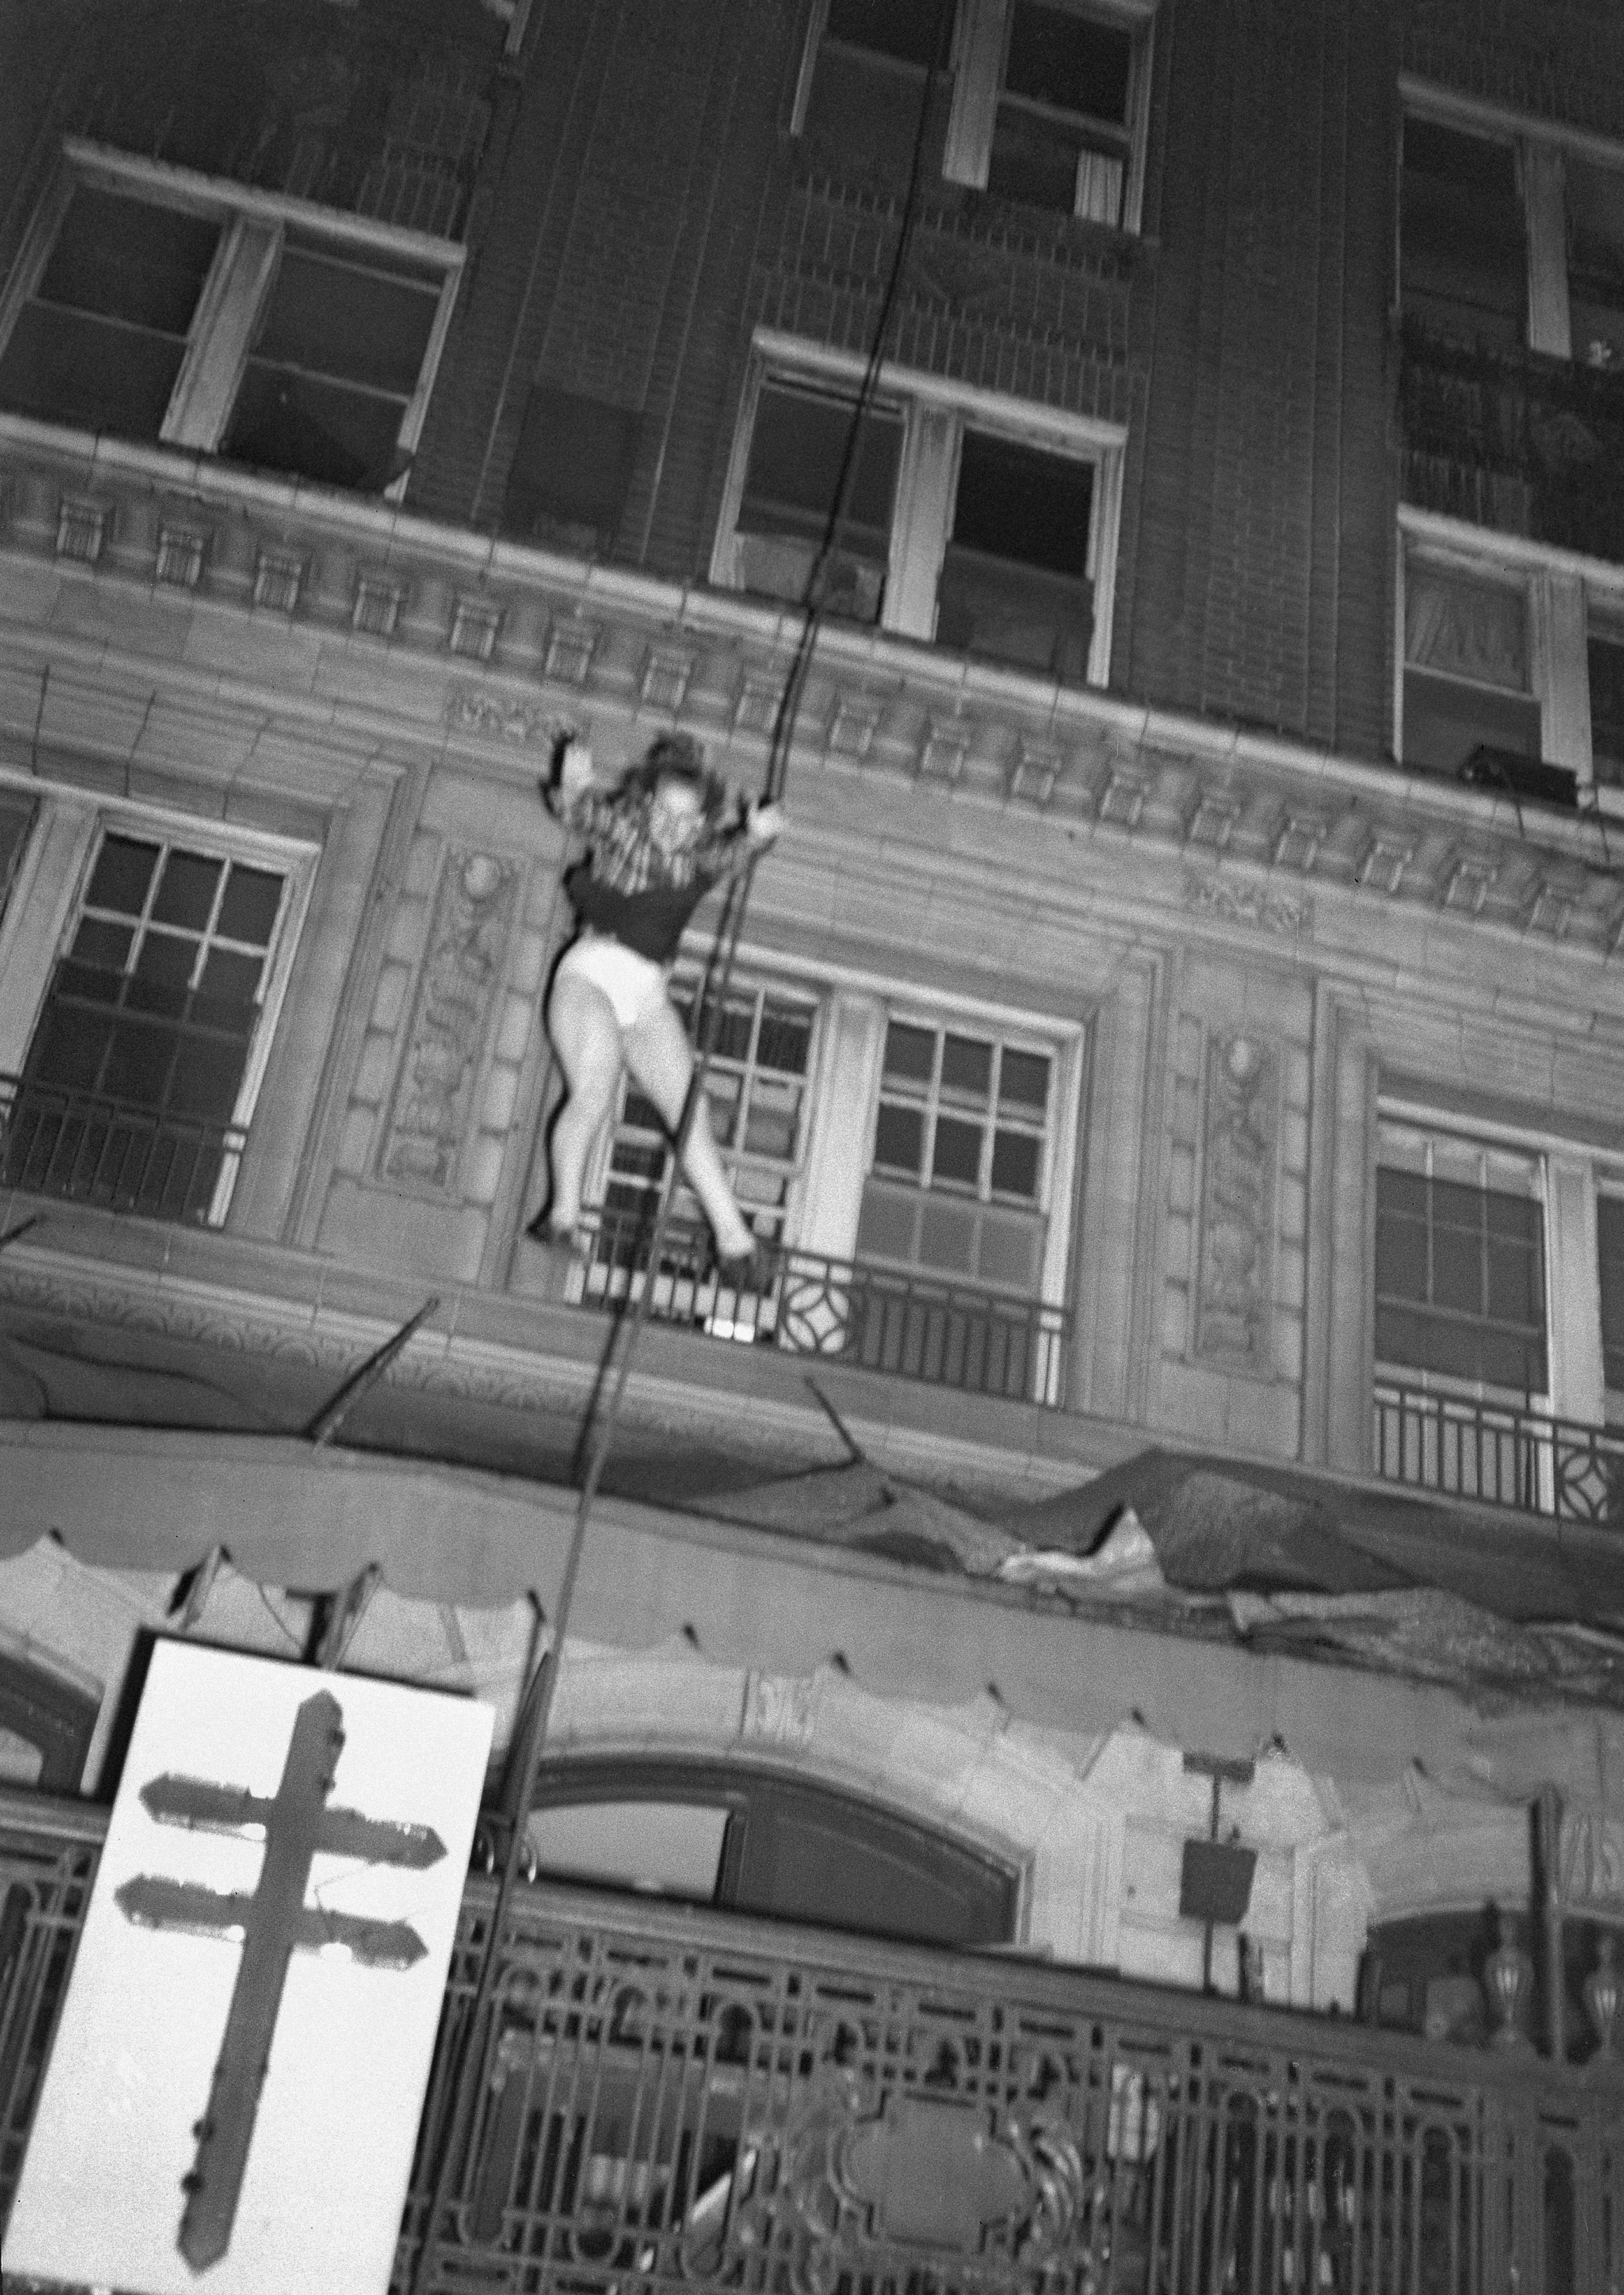 A woman plunges from the upper floors of Atlanta's Winecoff Hotel as a fire traps many occupants, Dec. 7, 1946. The woman was reported to have survived after her fall was broken by part of the hotel marquee. The fire killed 119 people, including he hotel's owners. (Arnold Hardy via AP)